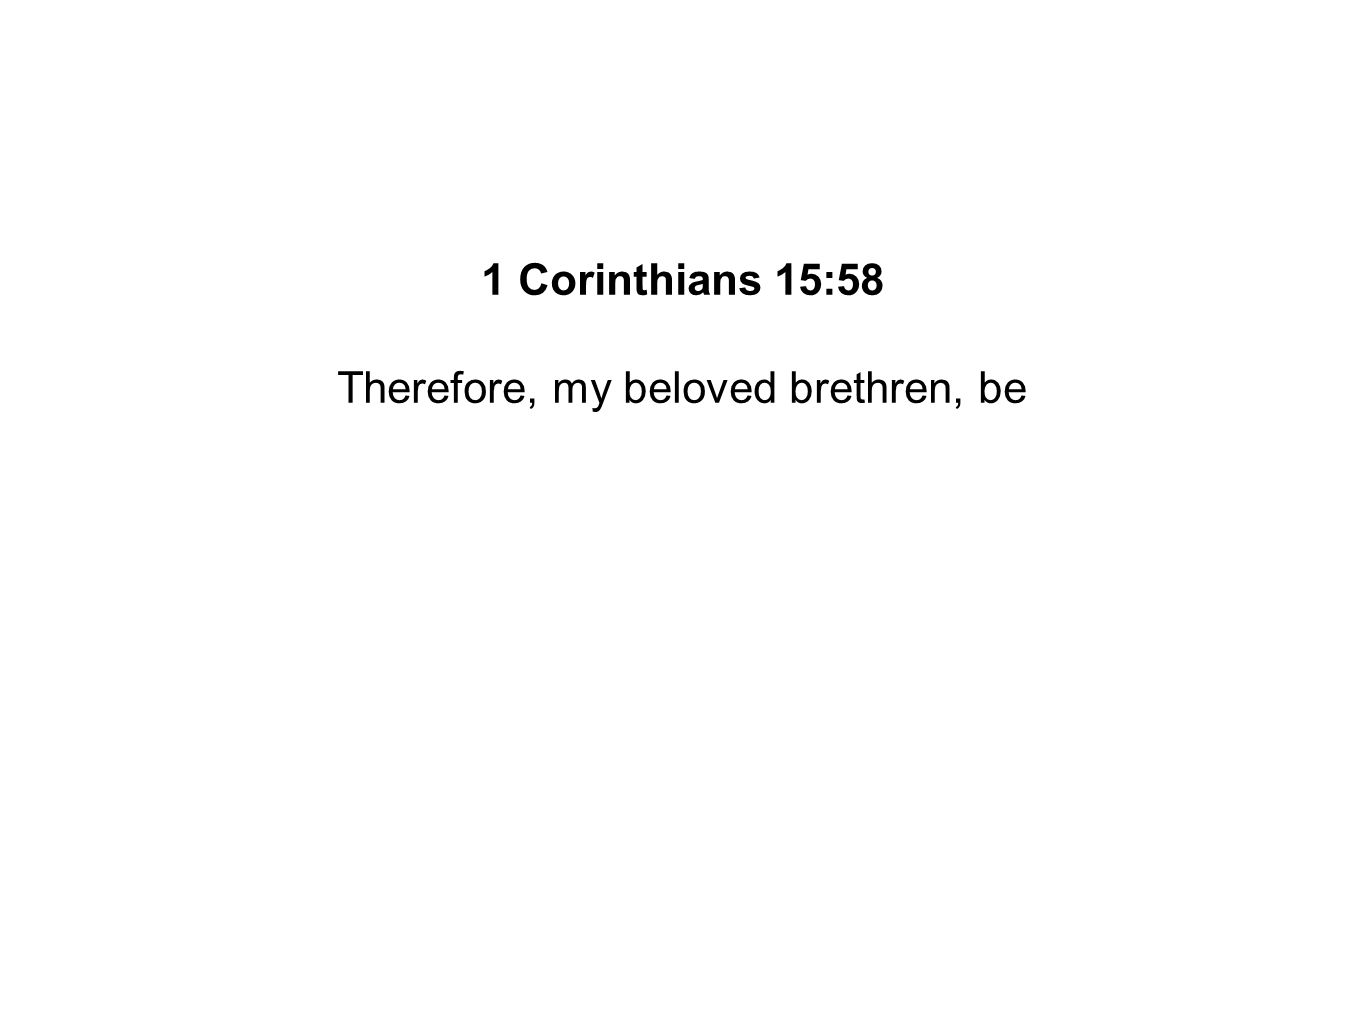 Therefore, my beloved brethren, be